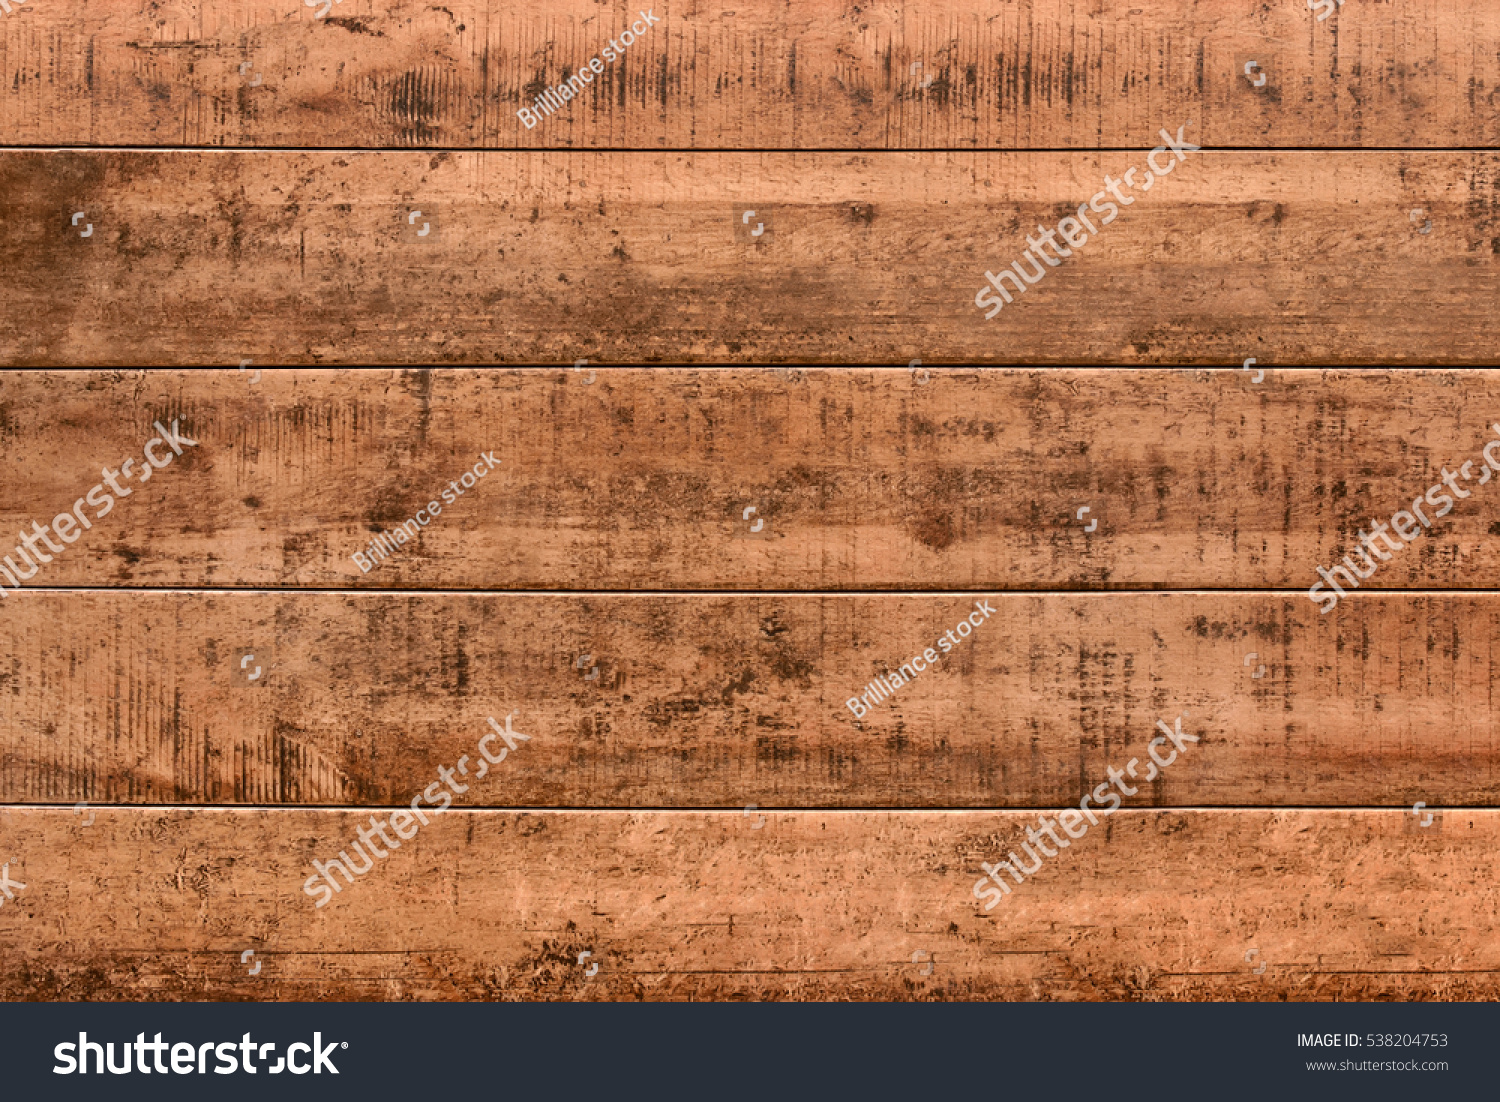 Wood table top texture - Old Wooden Rustic Table Top Texture Background